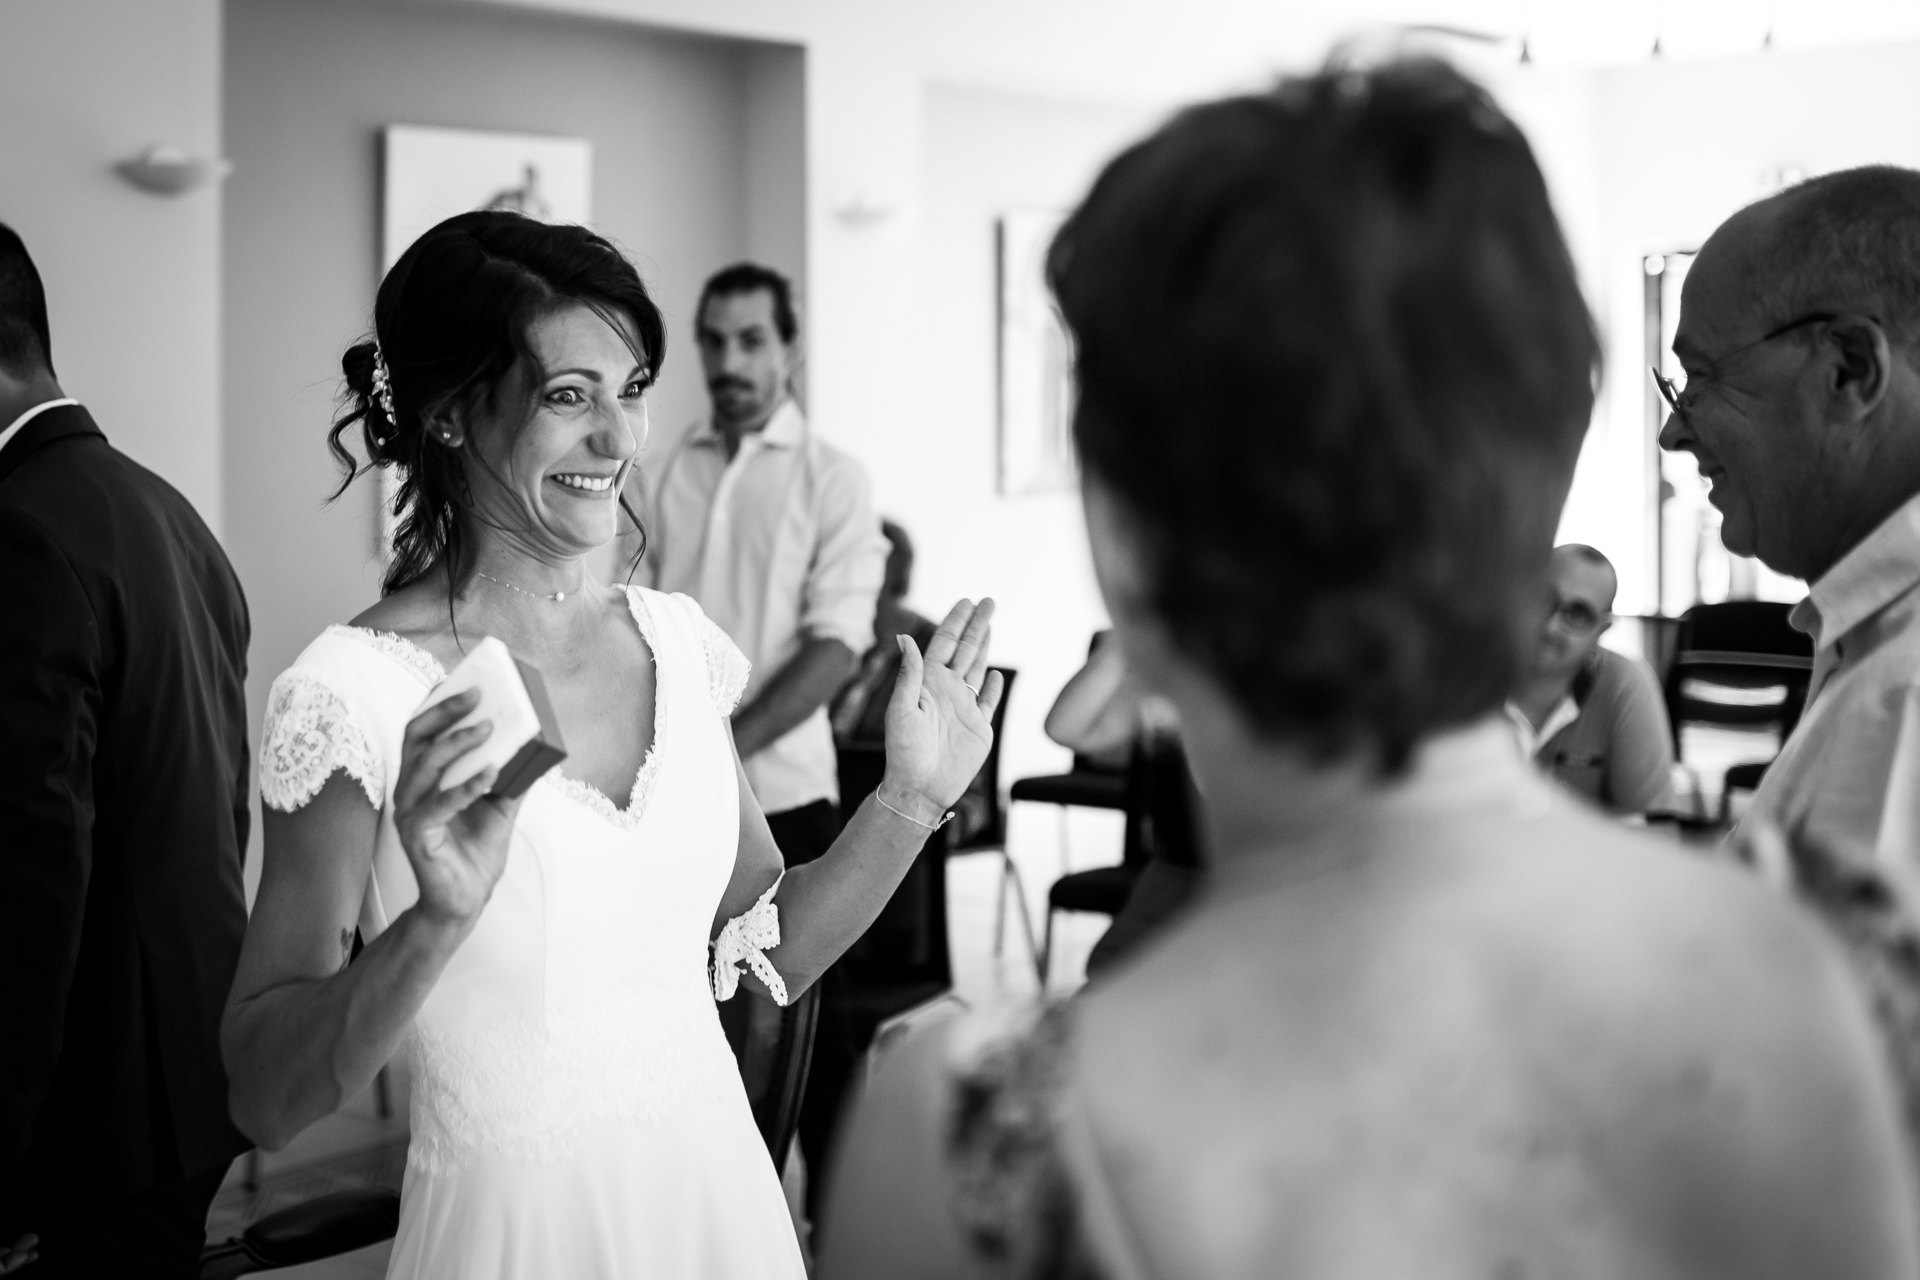 Lescure, Tarn, FR Wedding Ceremony Photography | Happiness on her face when she looked at her parents